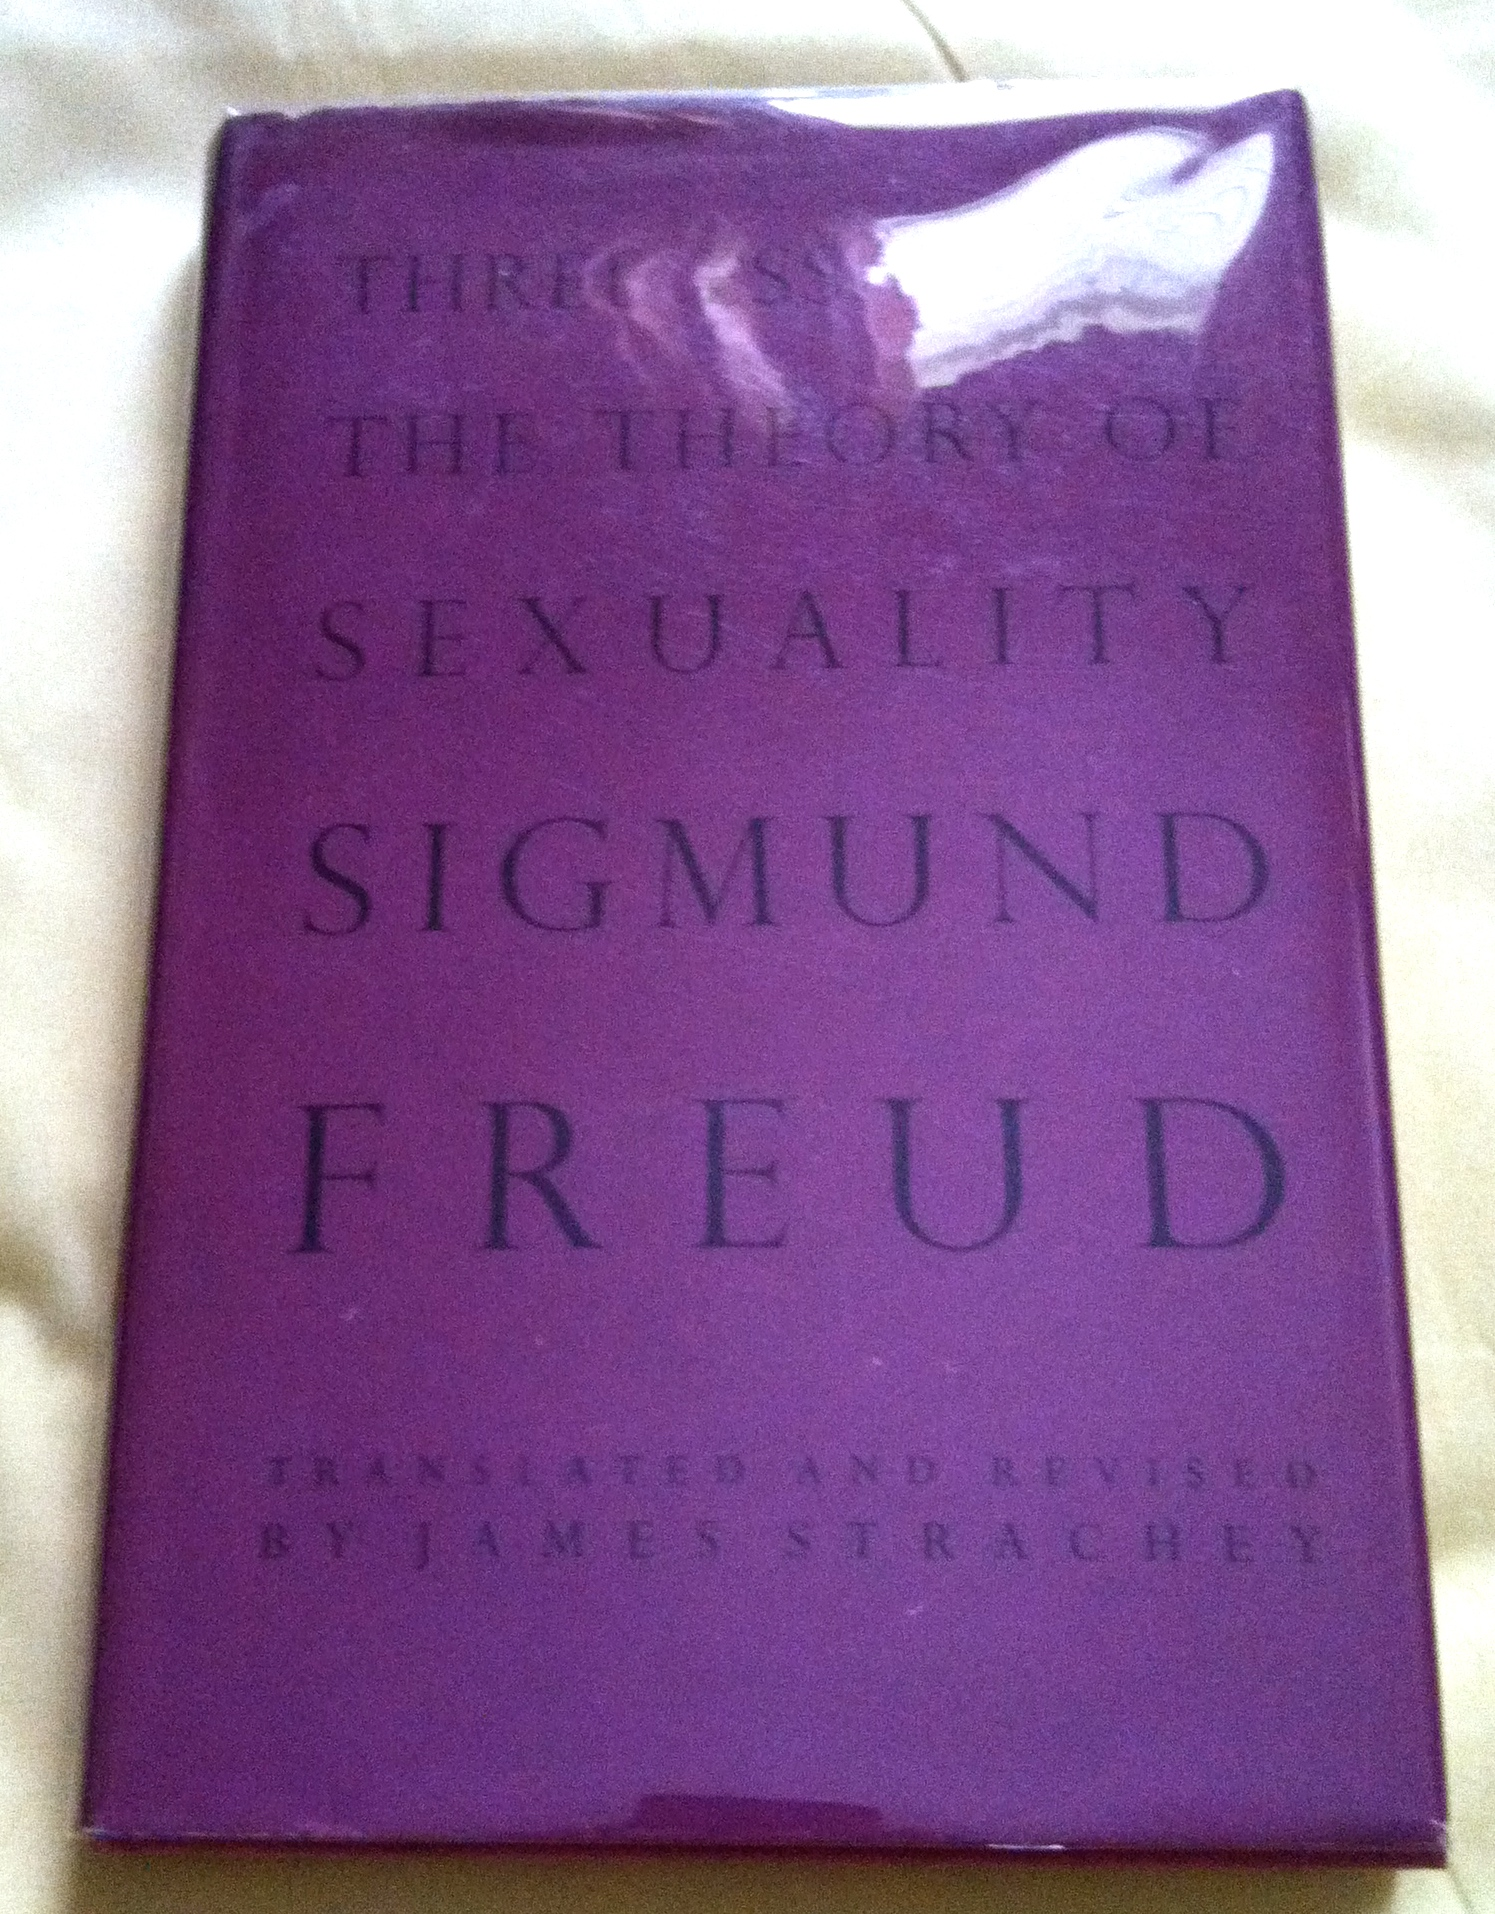 Strachey psychoanalysis and sexuality